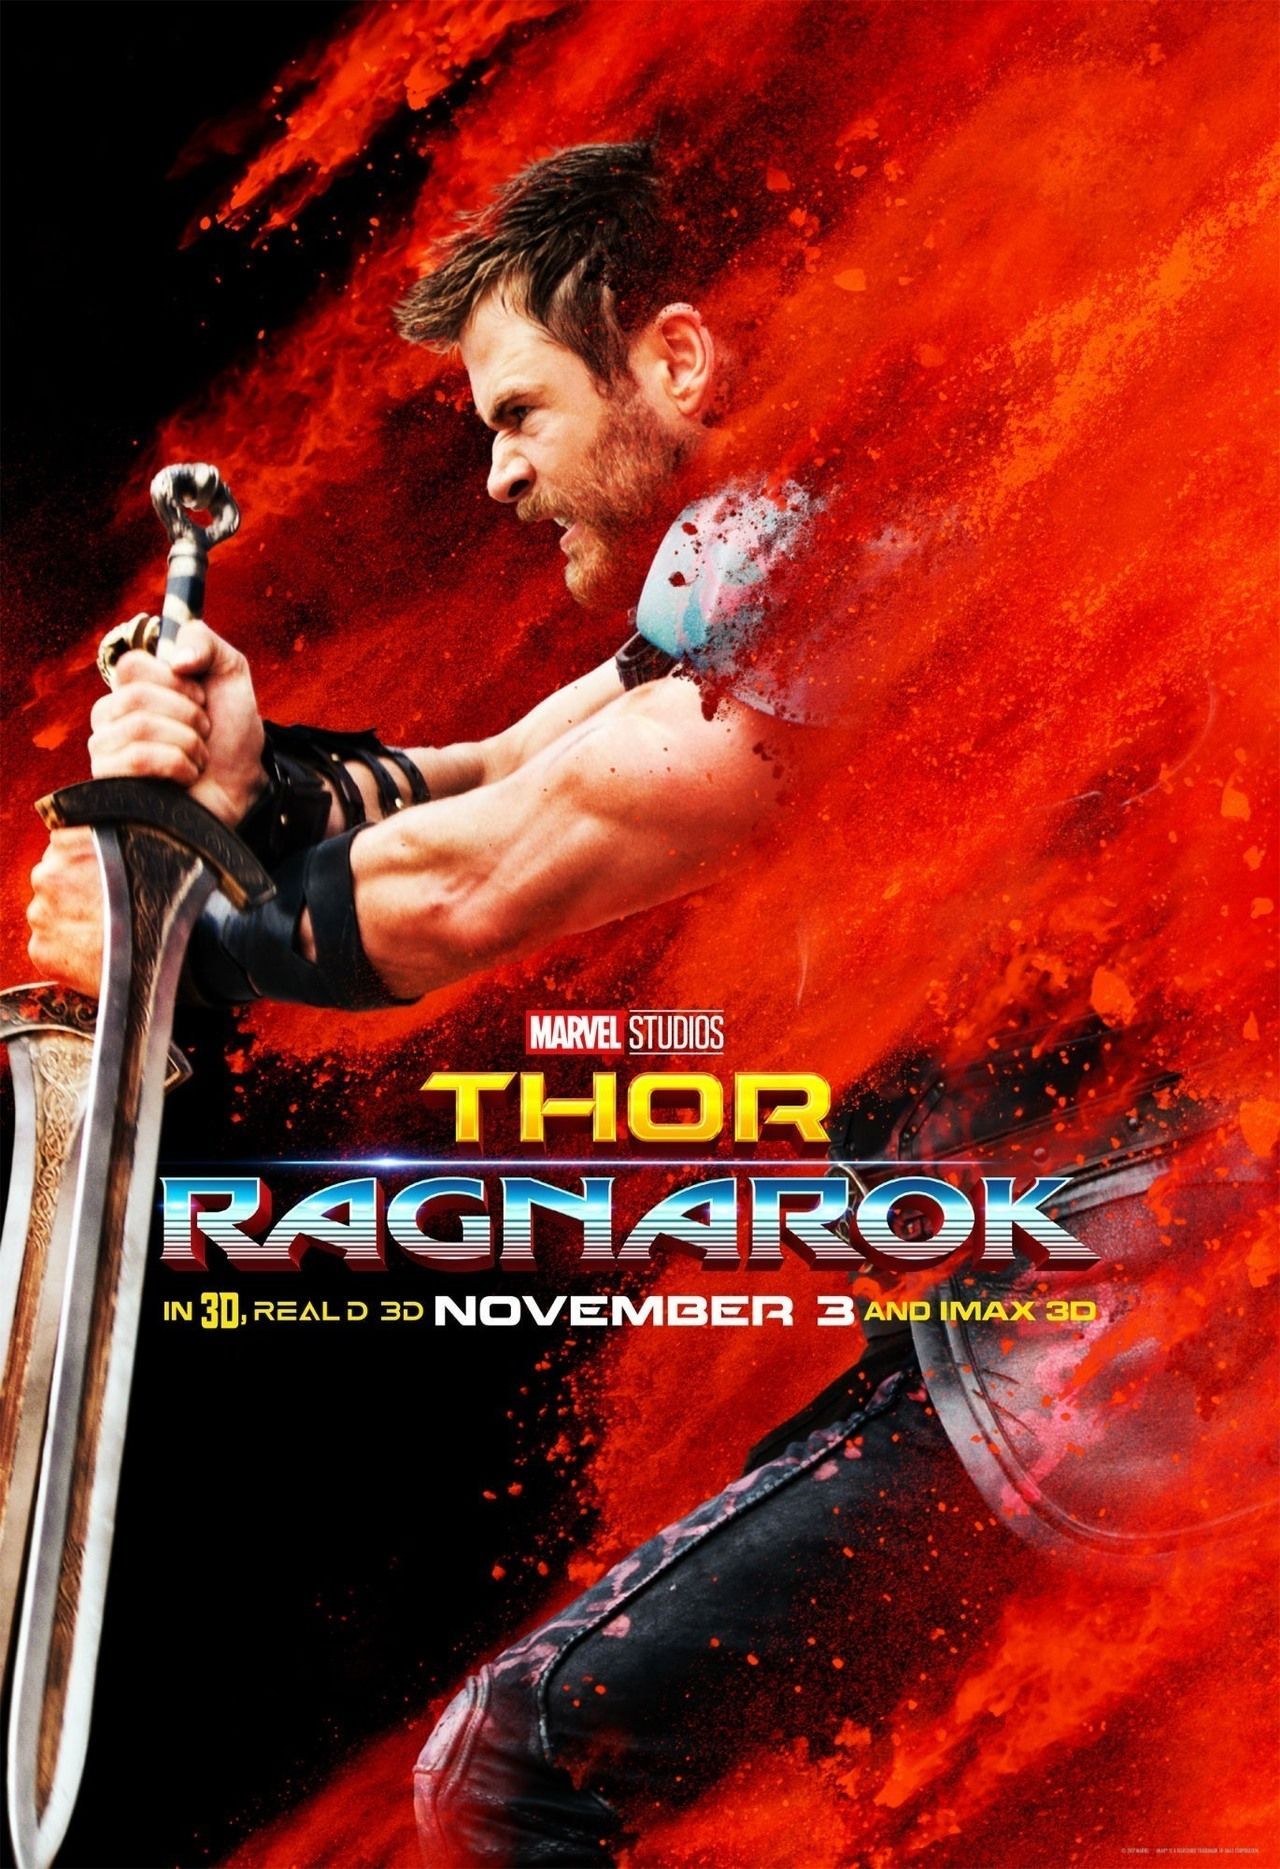 Thor Ragnarok Hd Wallpaper 2020 Live Wallpaper Hd Thor Ragnarok Movie Ragnarok Movie Marvel Studios